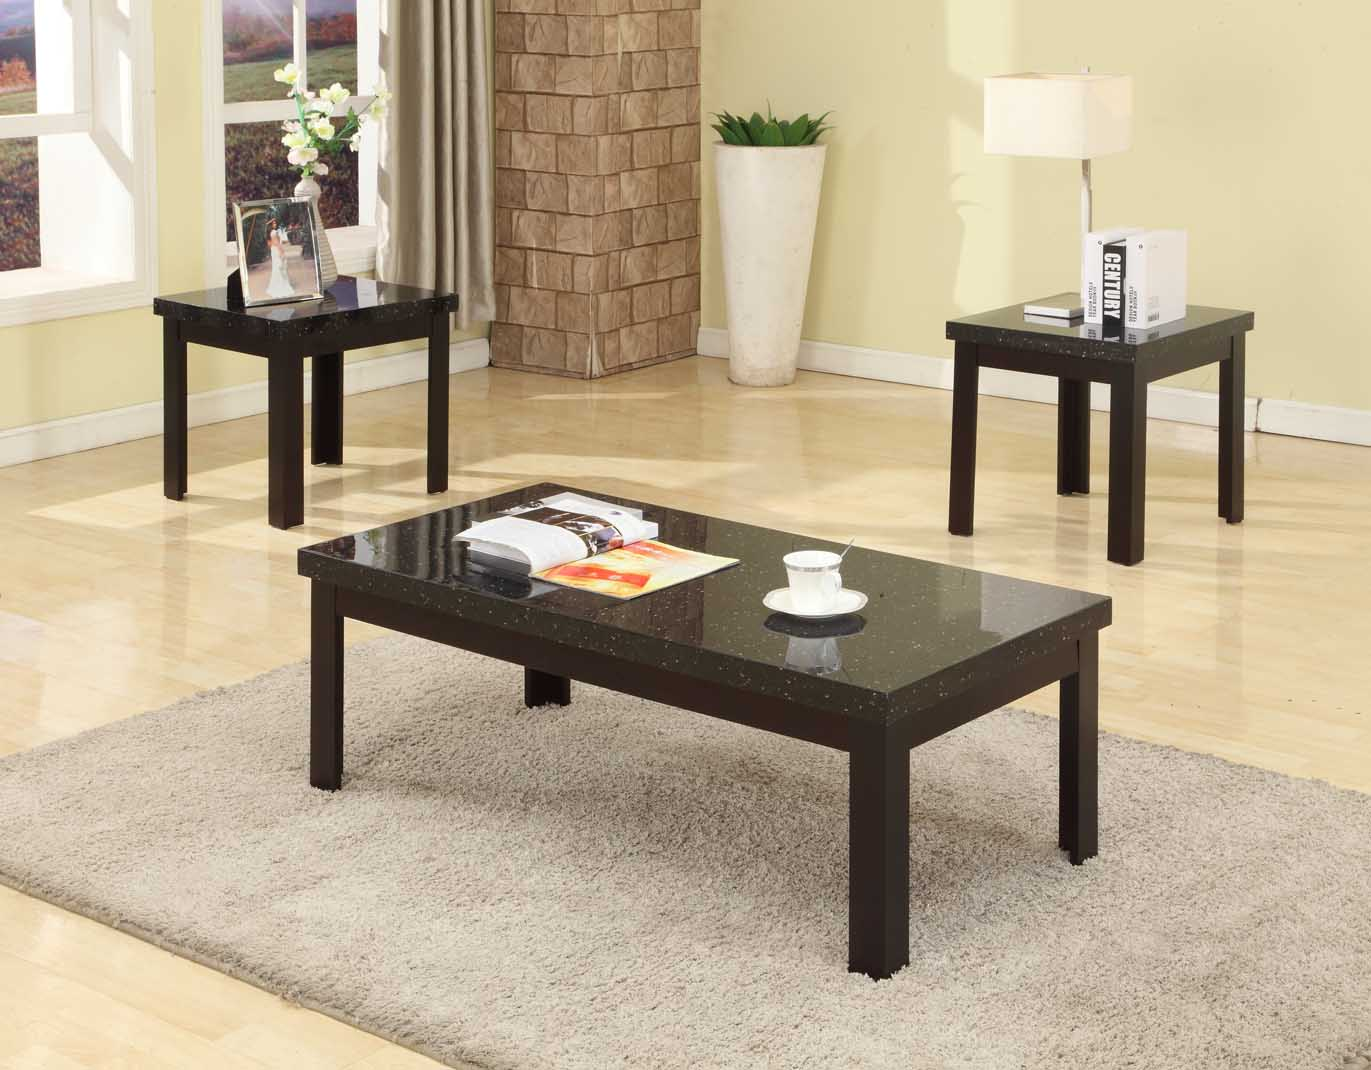 coffee tables ideas best end wood cocktail black faux marble interior furry carpet furniture living room fragile white oak traditional slate rustic mission tile and table sets